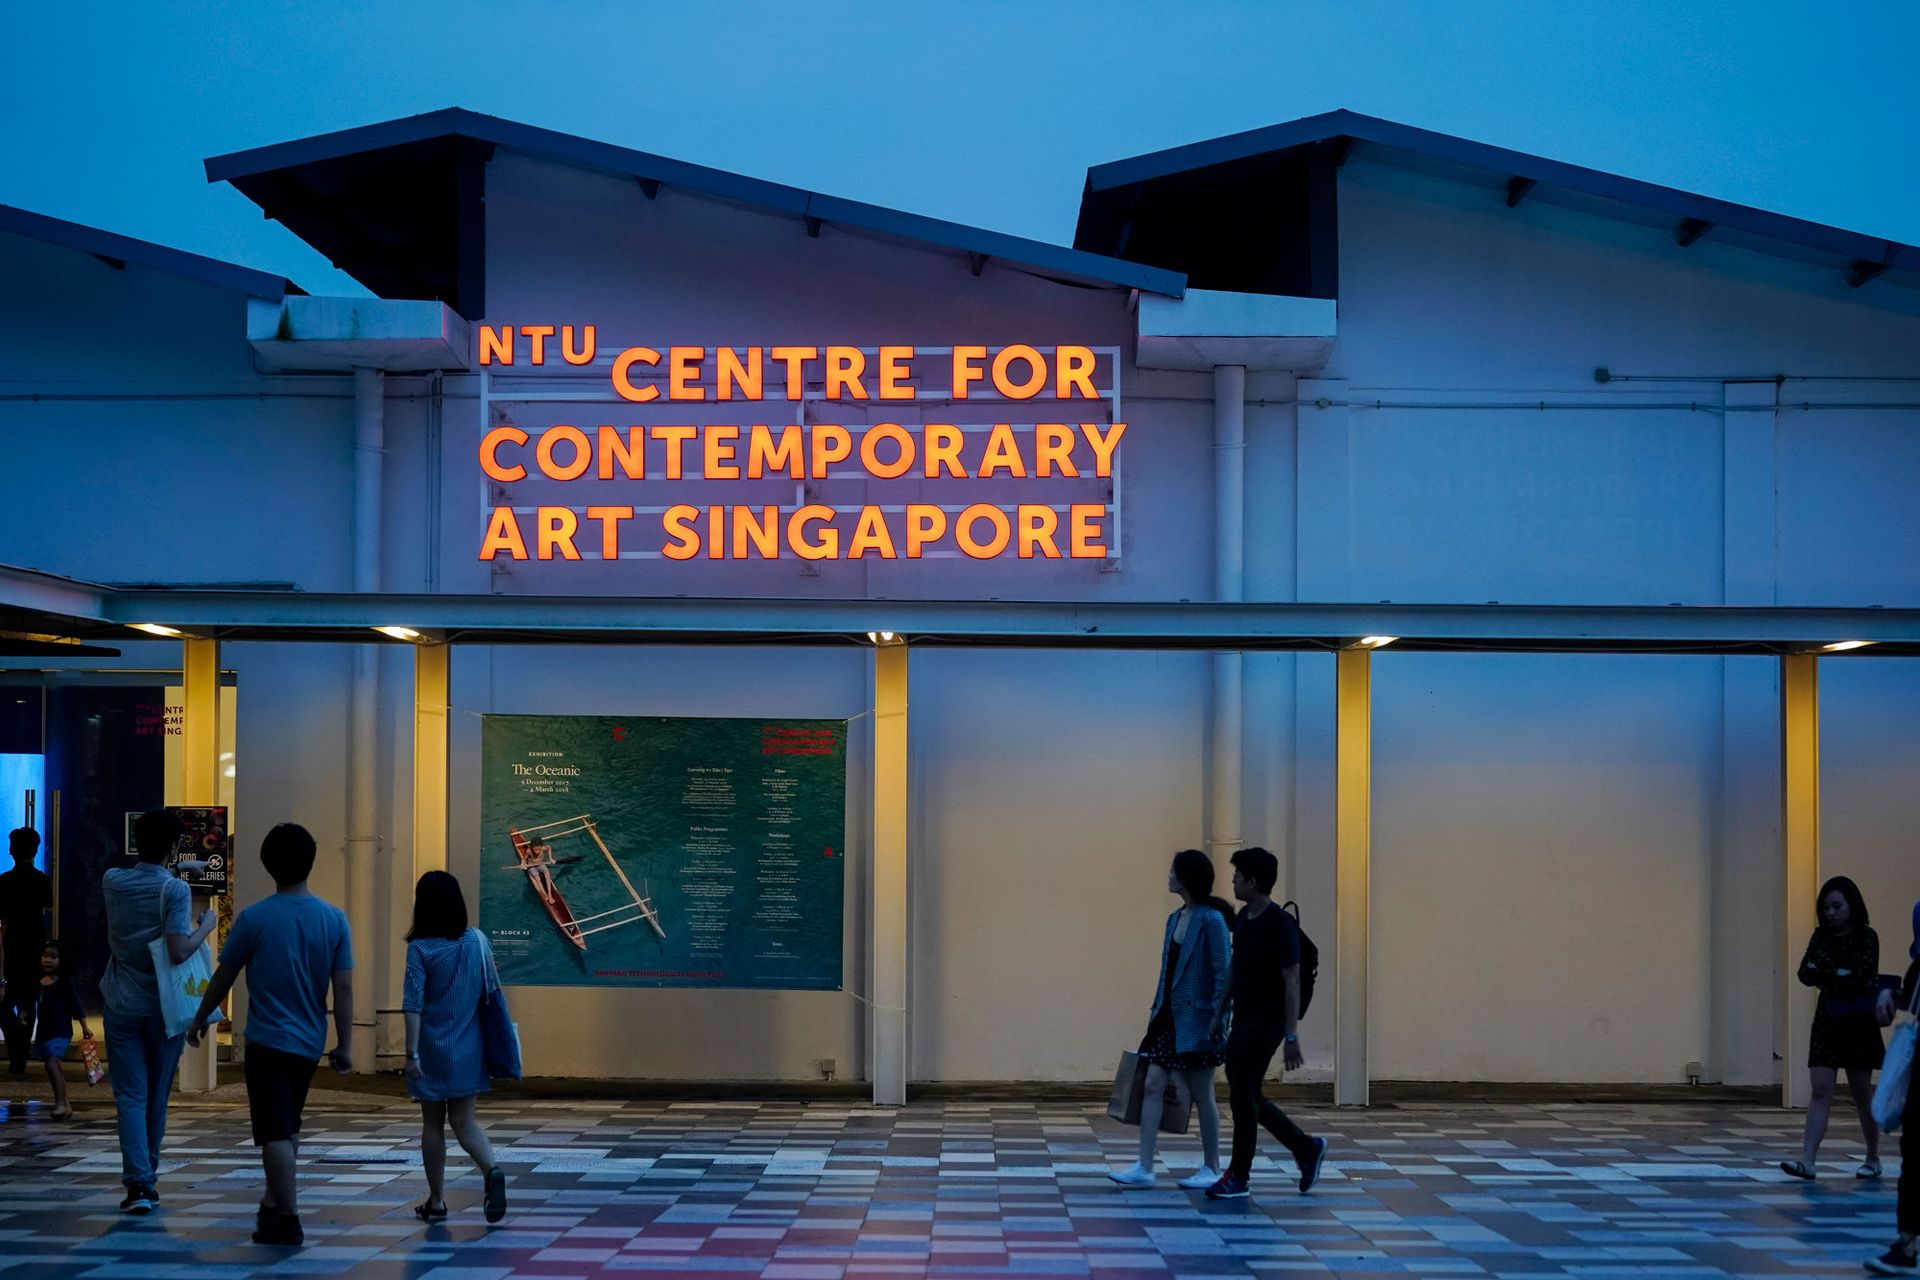 The Nanyang Technical University Centre for Contemporary Art Singapore was established in the government-driven Gillman Barracks complex in January 2013 © Kong Chong Yew